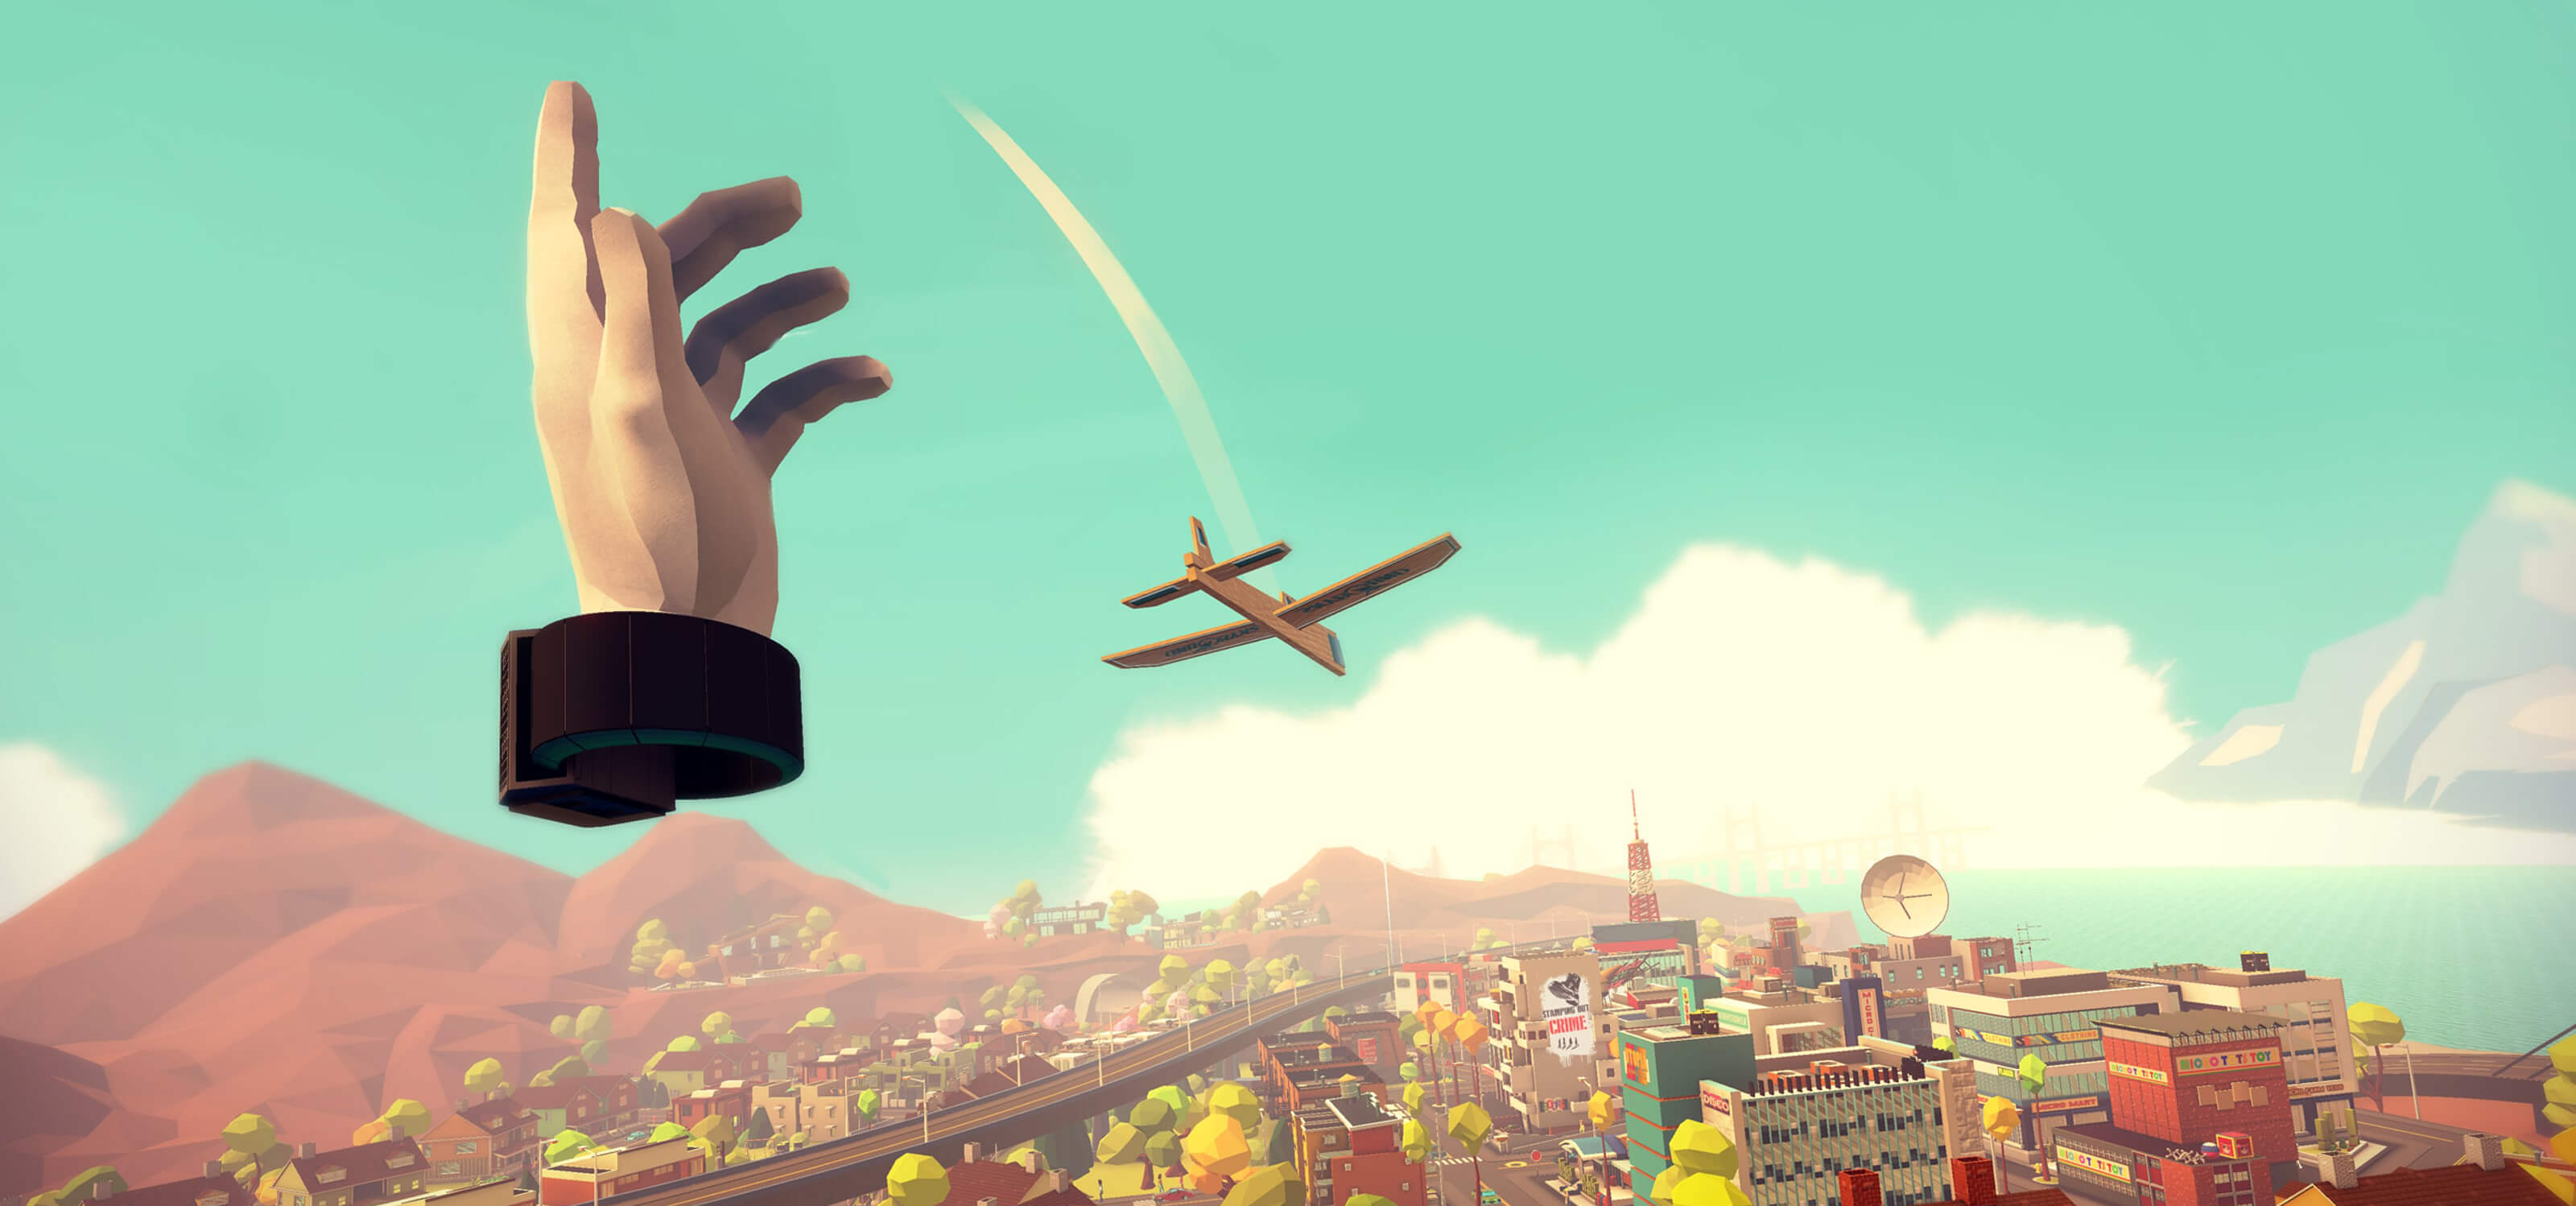 Screenshot from Giant Cop of a huge detached hand flinging a wooden airplane through the air